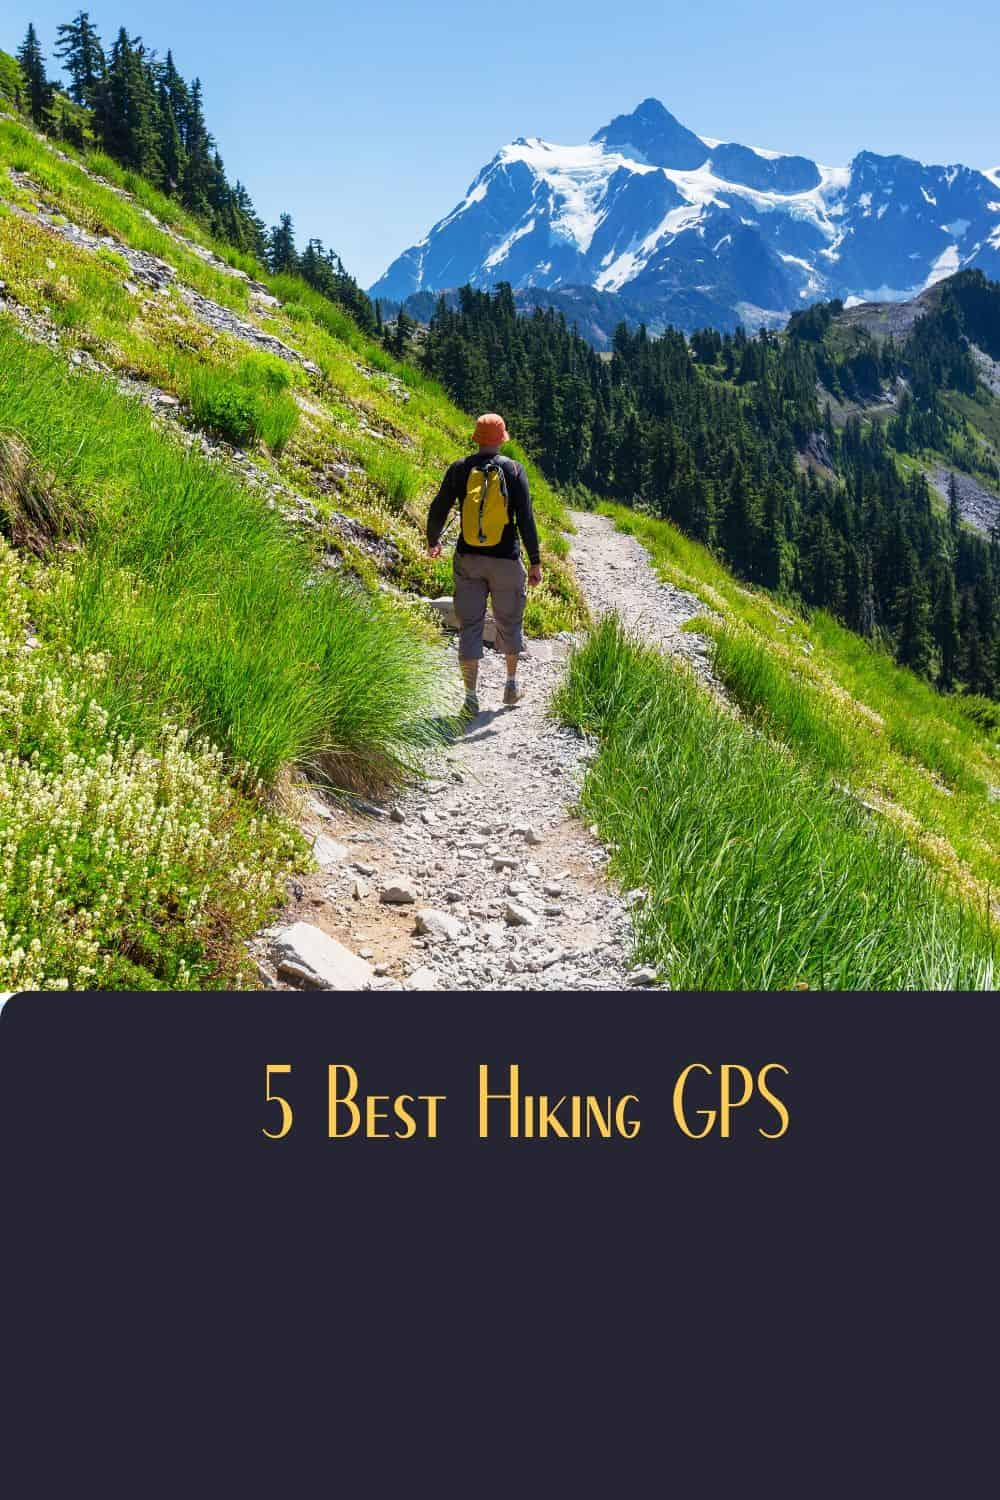 Pinterest image for 5 Best Hiking GPS